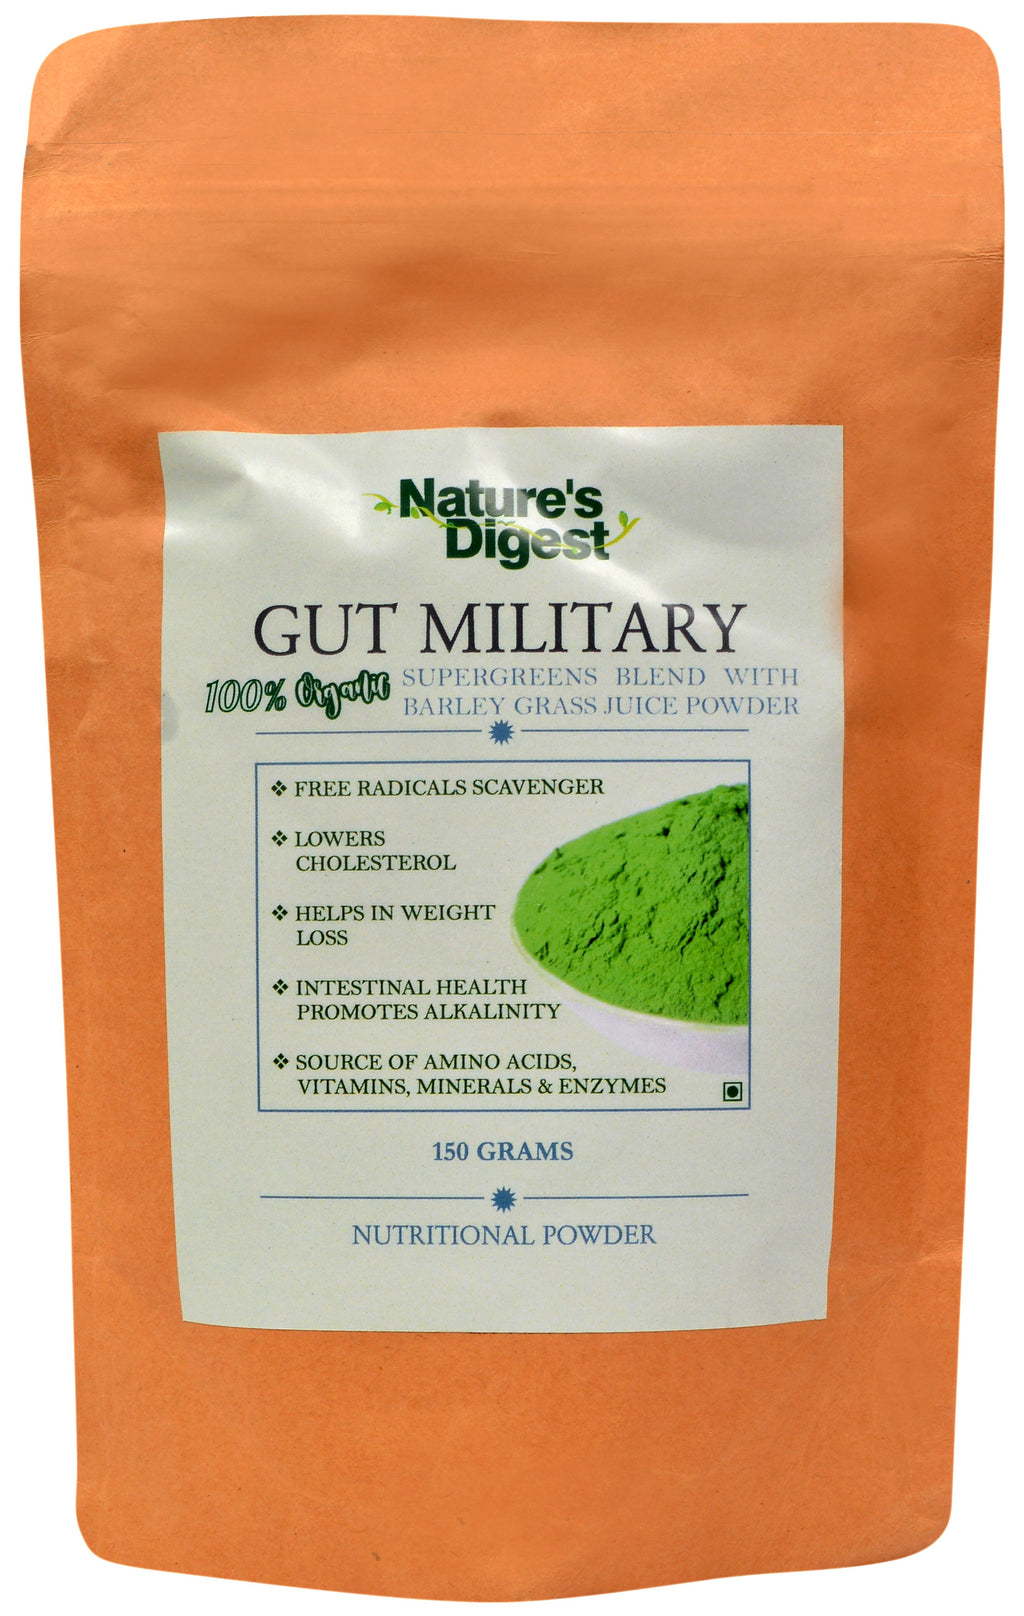 Gut Military 100% Organic Supergreens Blend with Barley Grass